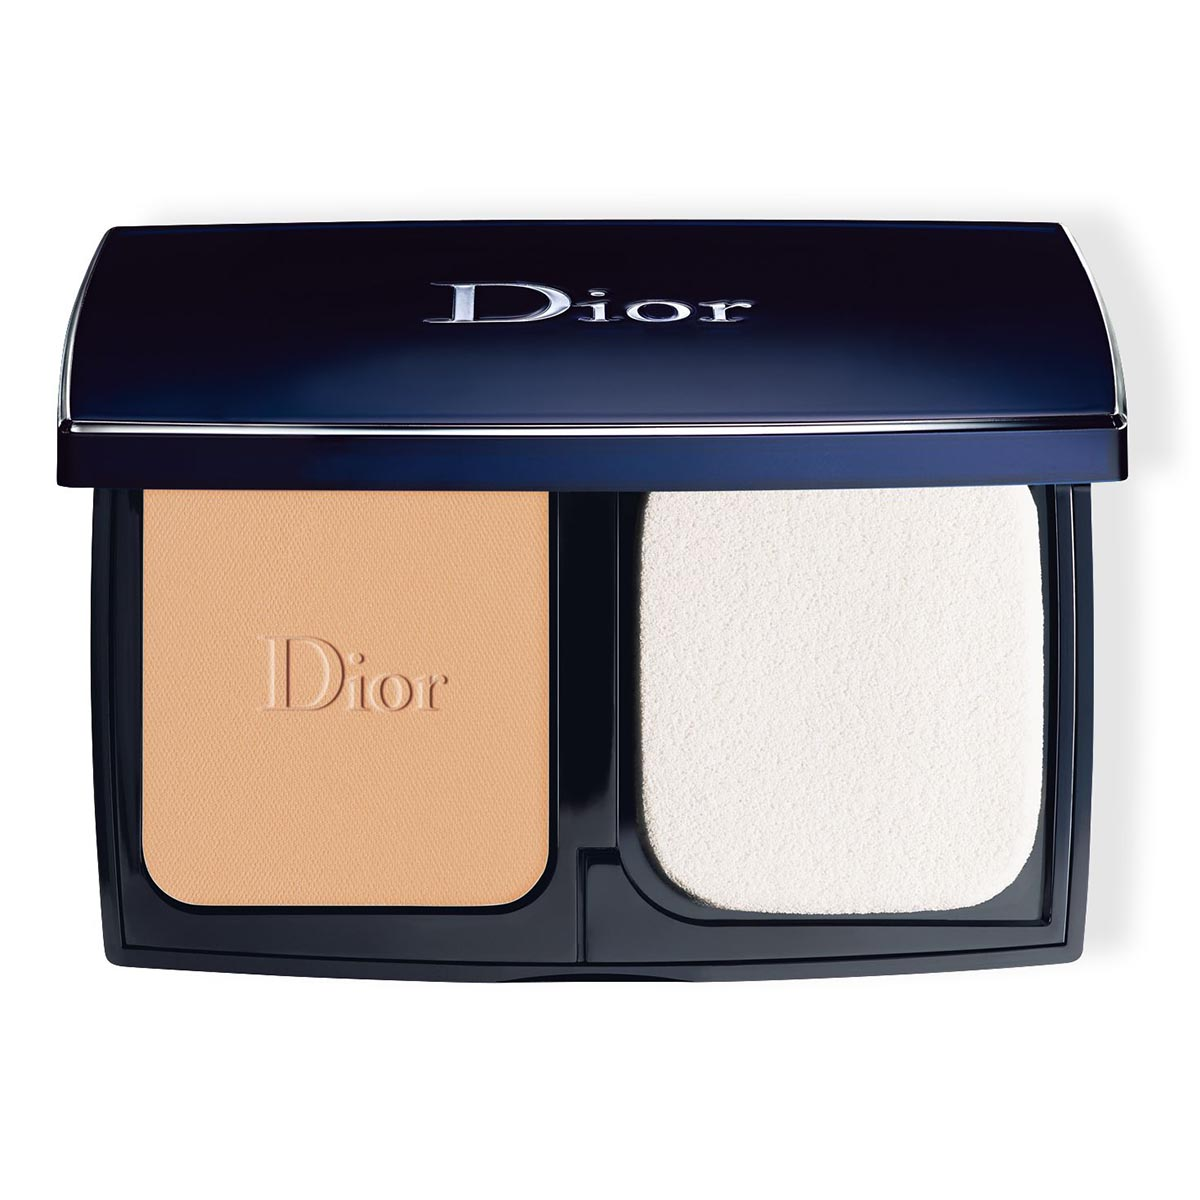 Dior diorskin forever compact powder 030 medium rose